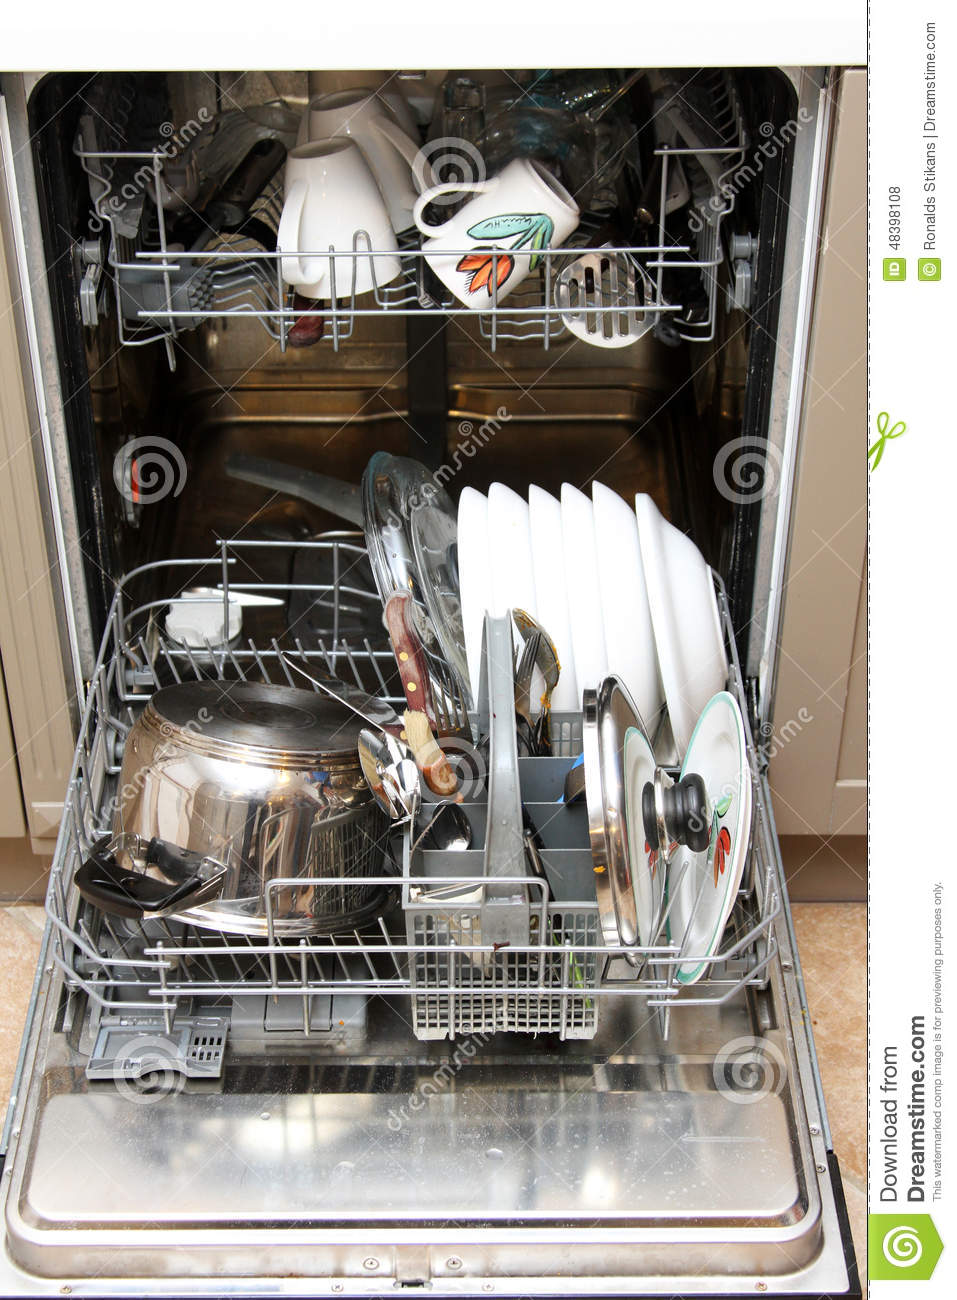 Dishwasher With Dirty Dishes Stock Photo - Image of ...